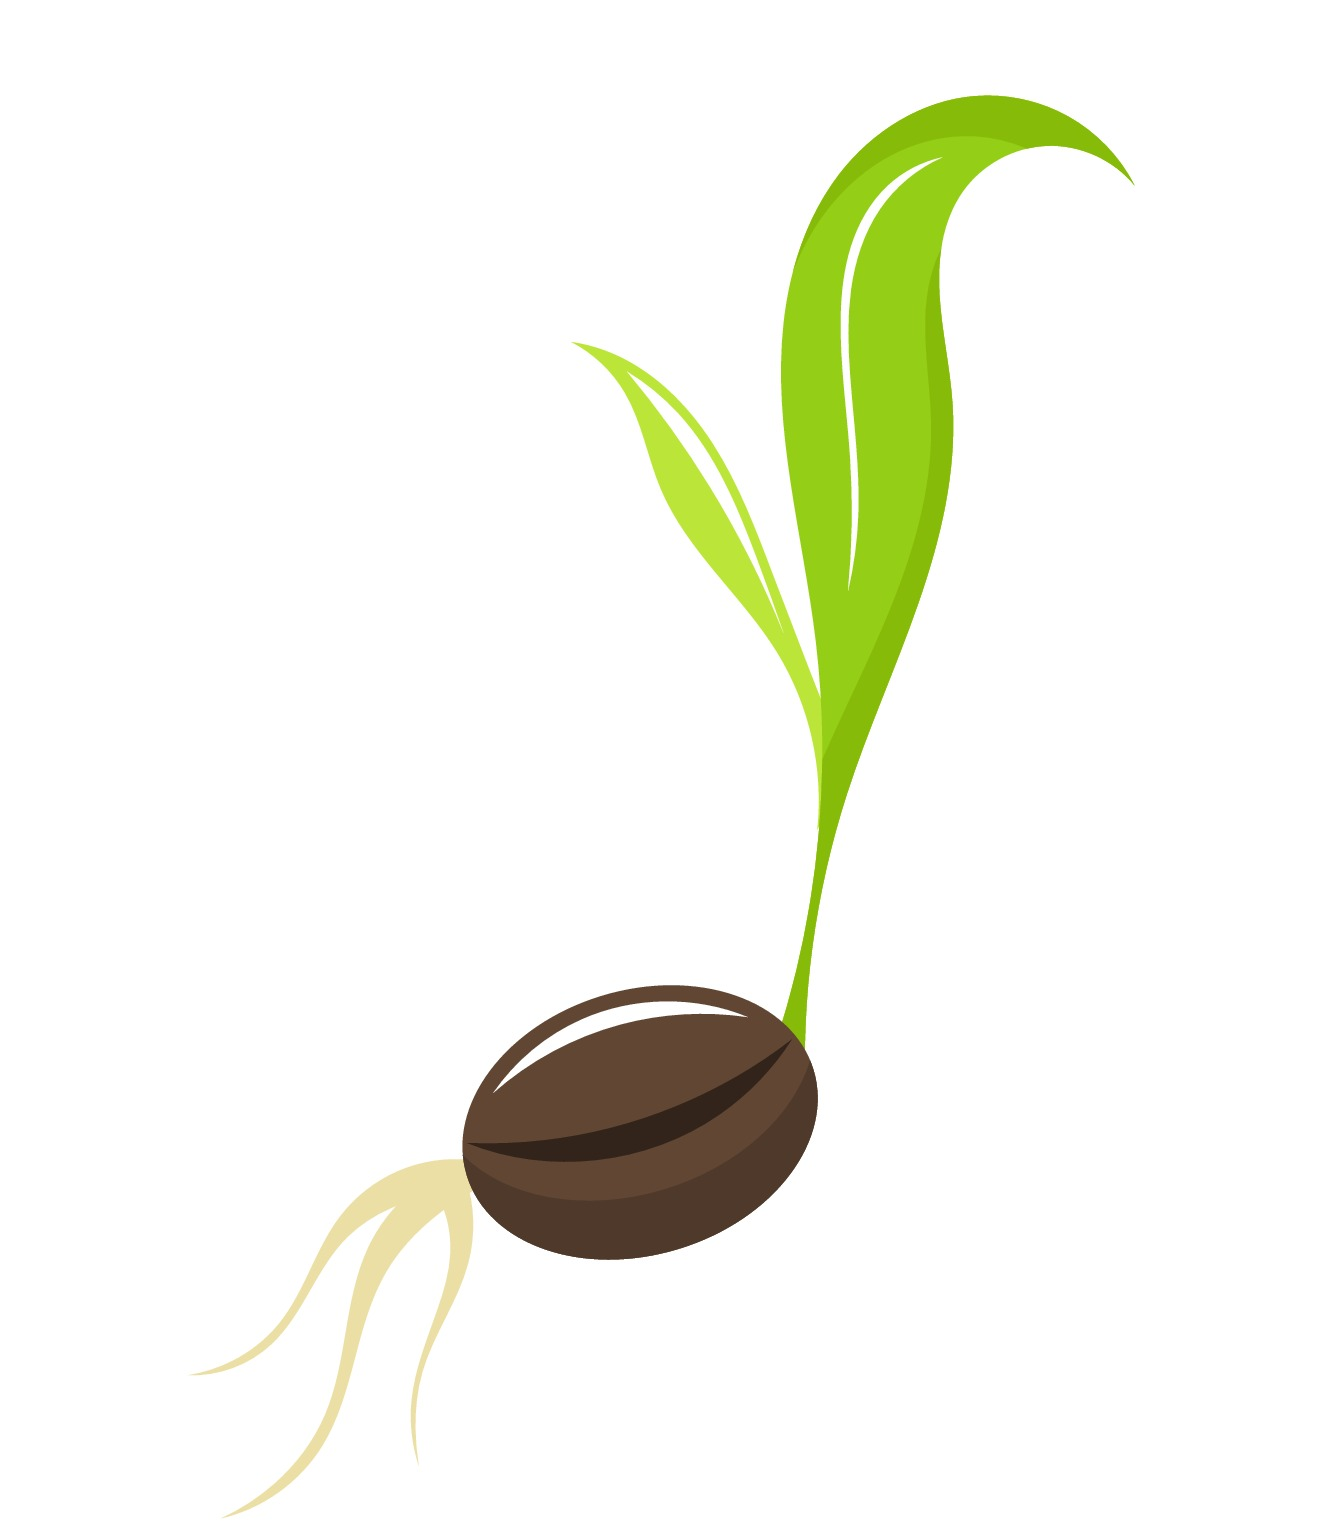 Seed clipart - Clipground